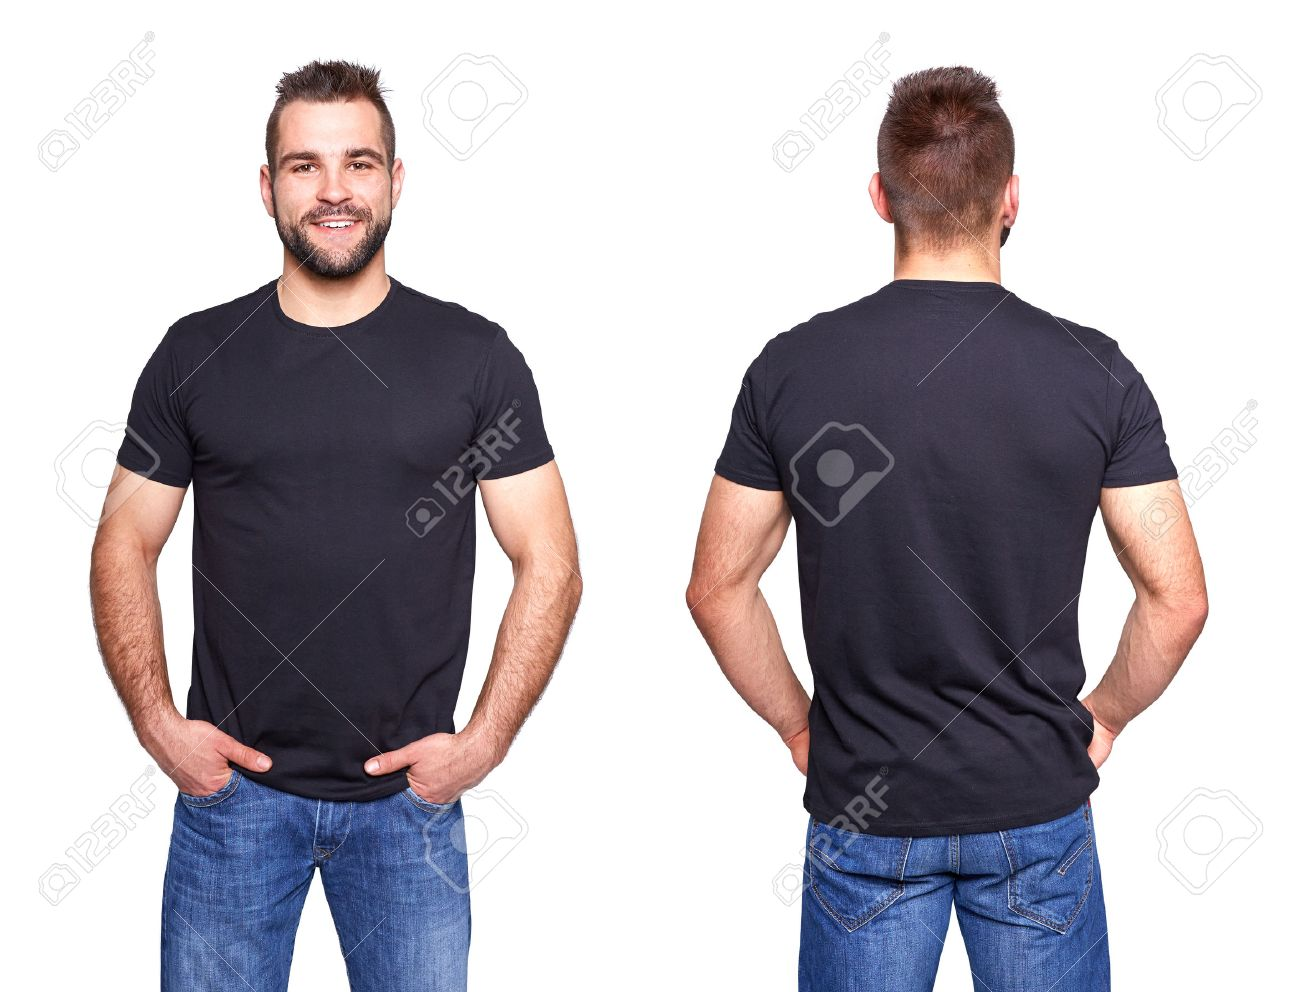 Black t shirt and jeans - Jeans And Black Shirt Black T Shirt On A Young Man Template On White Background